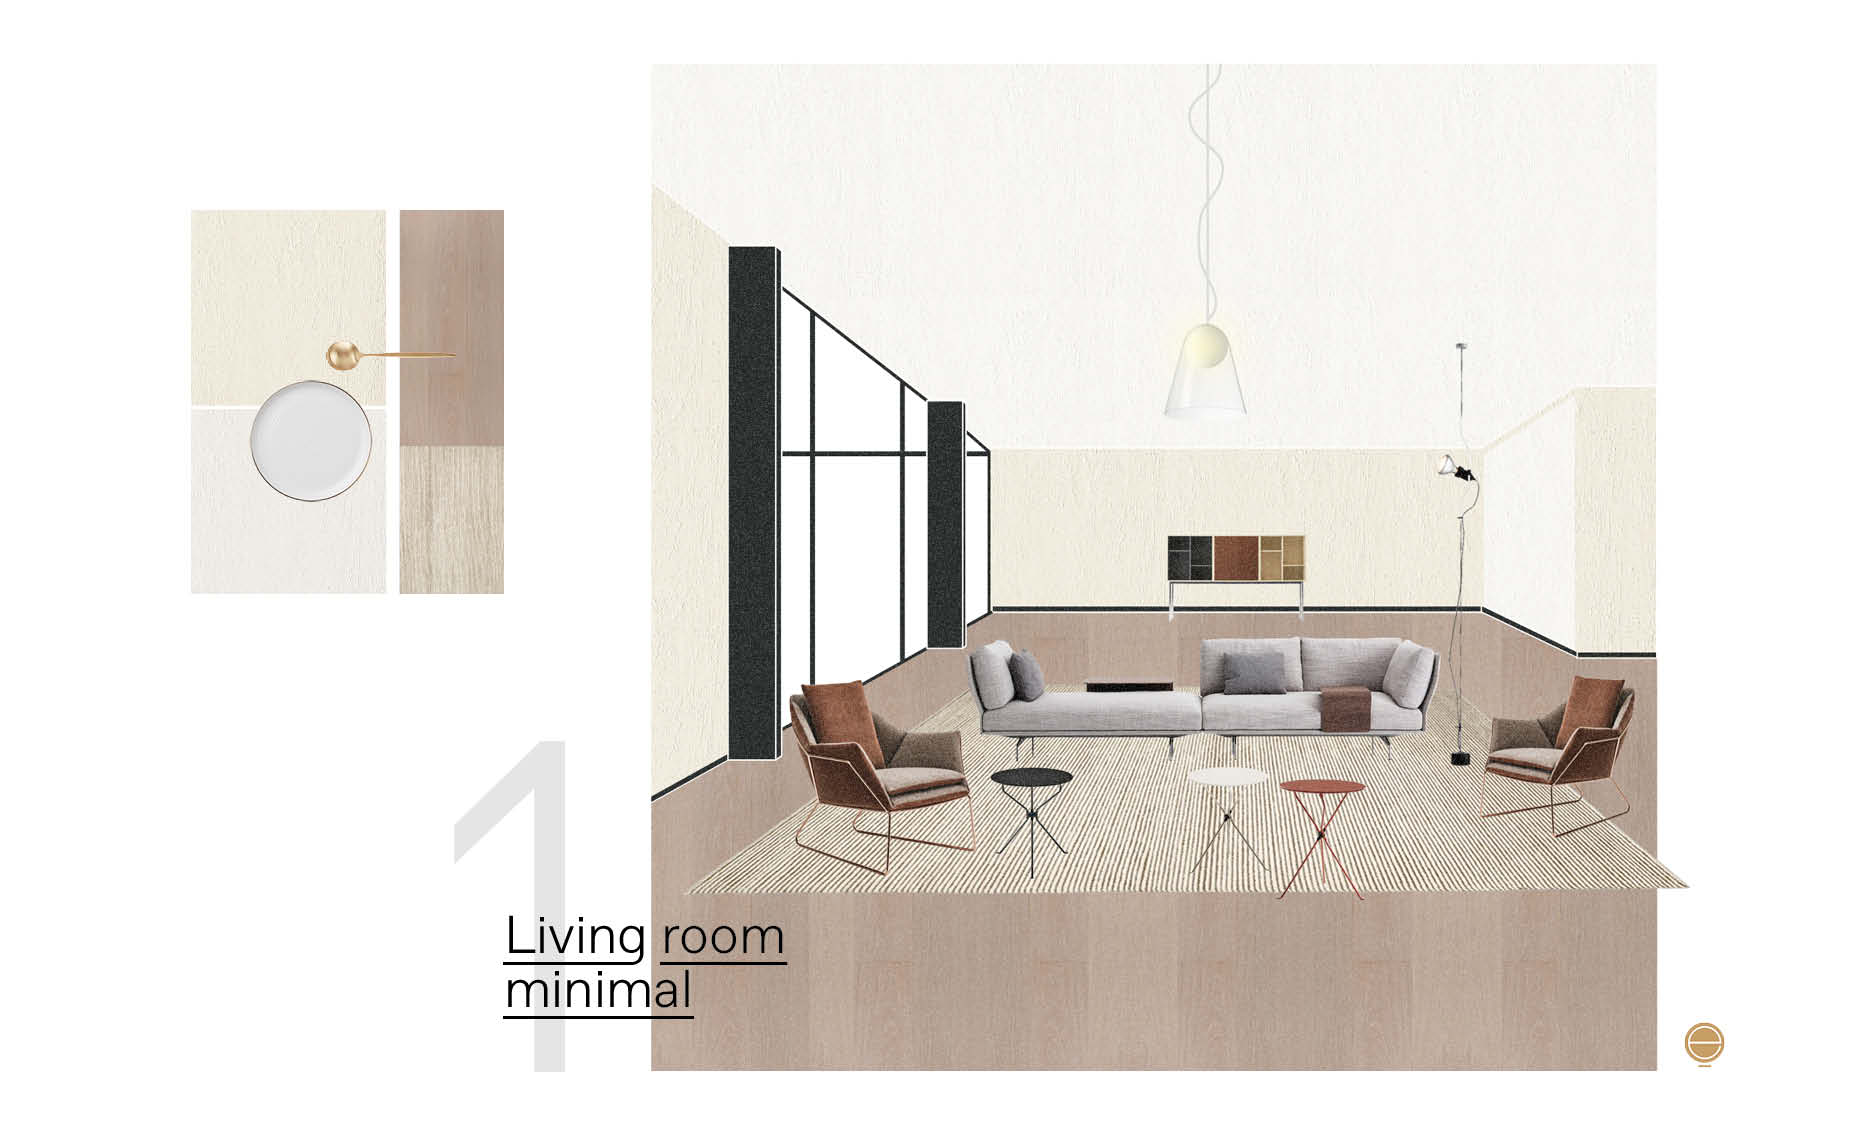 modern Italian living room material moodboard and perspective design by Esperiri Milano